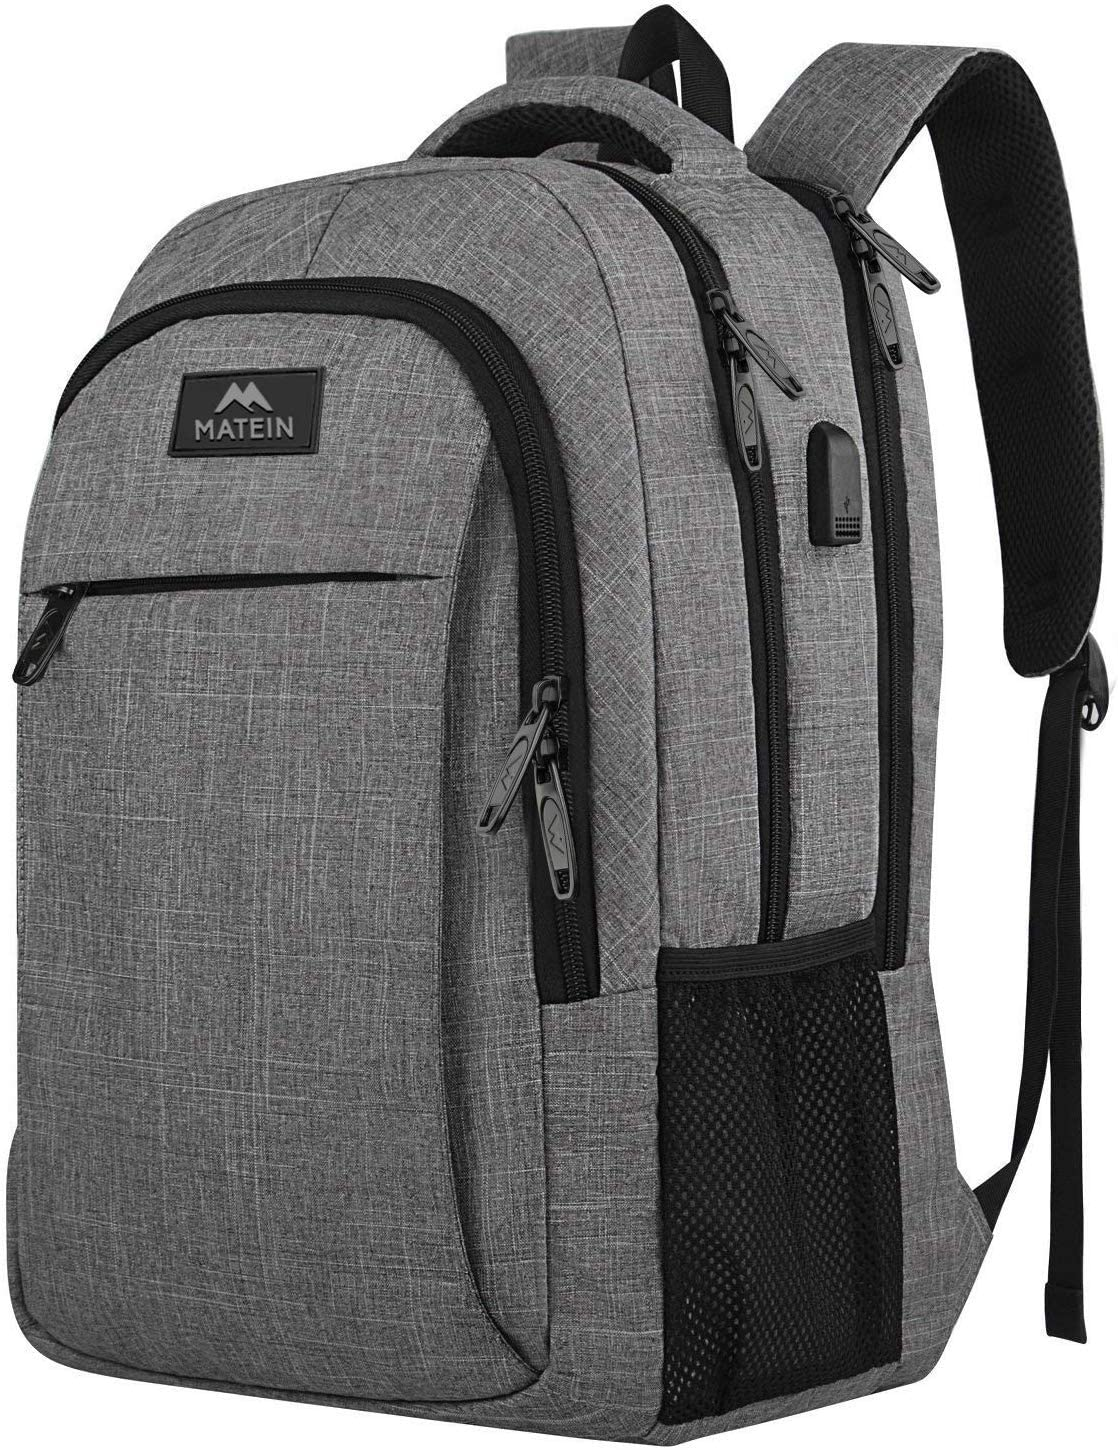 "Matein Travel 15.6"" Laptop Smart Backpack"